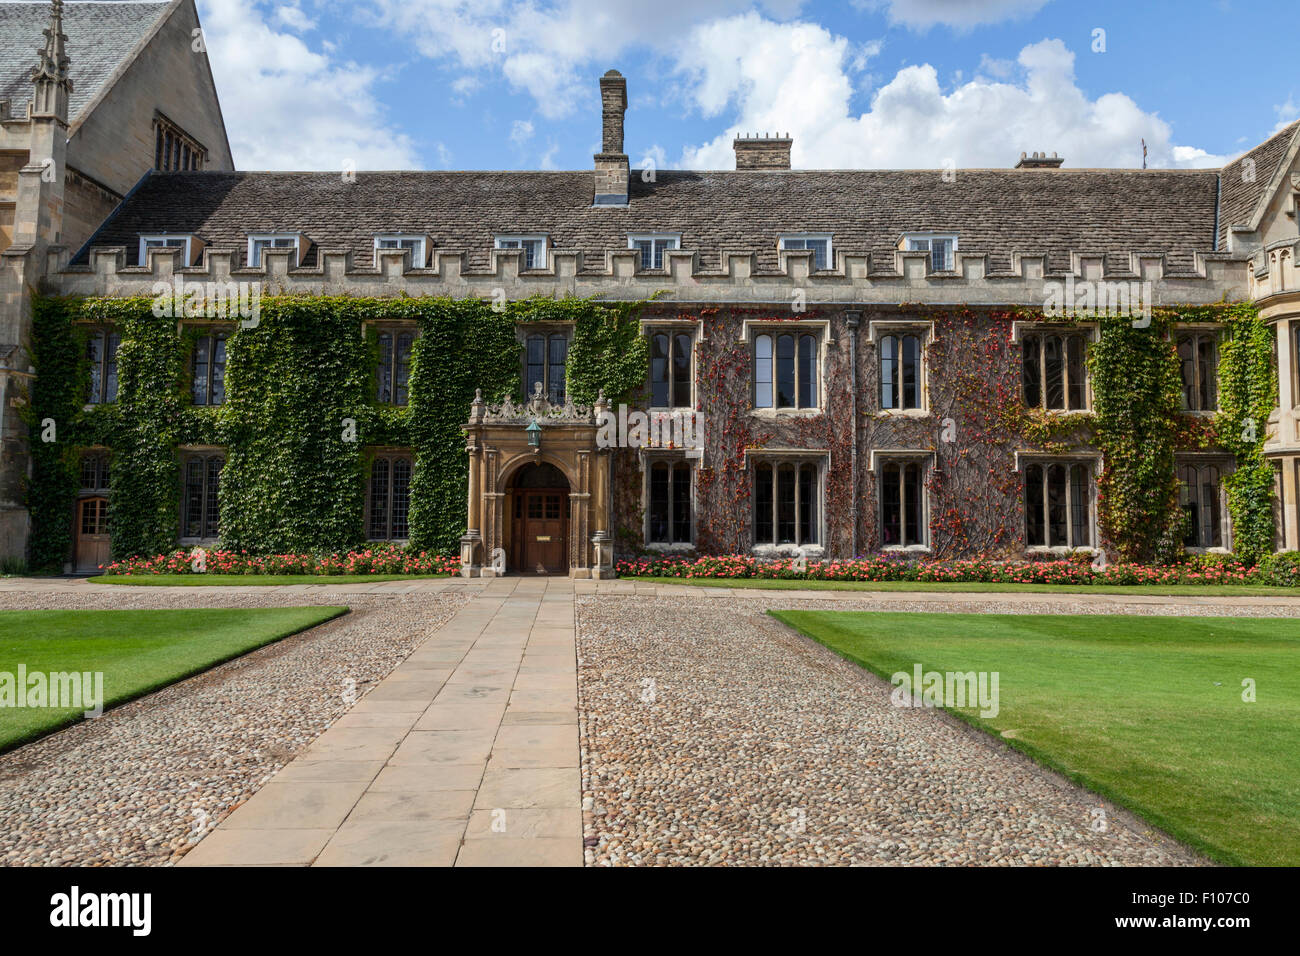 Trinity College Cambridge England, part of the Master's Lodge in the Great Court. - Stock Image